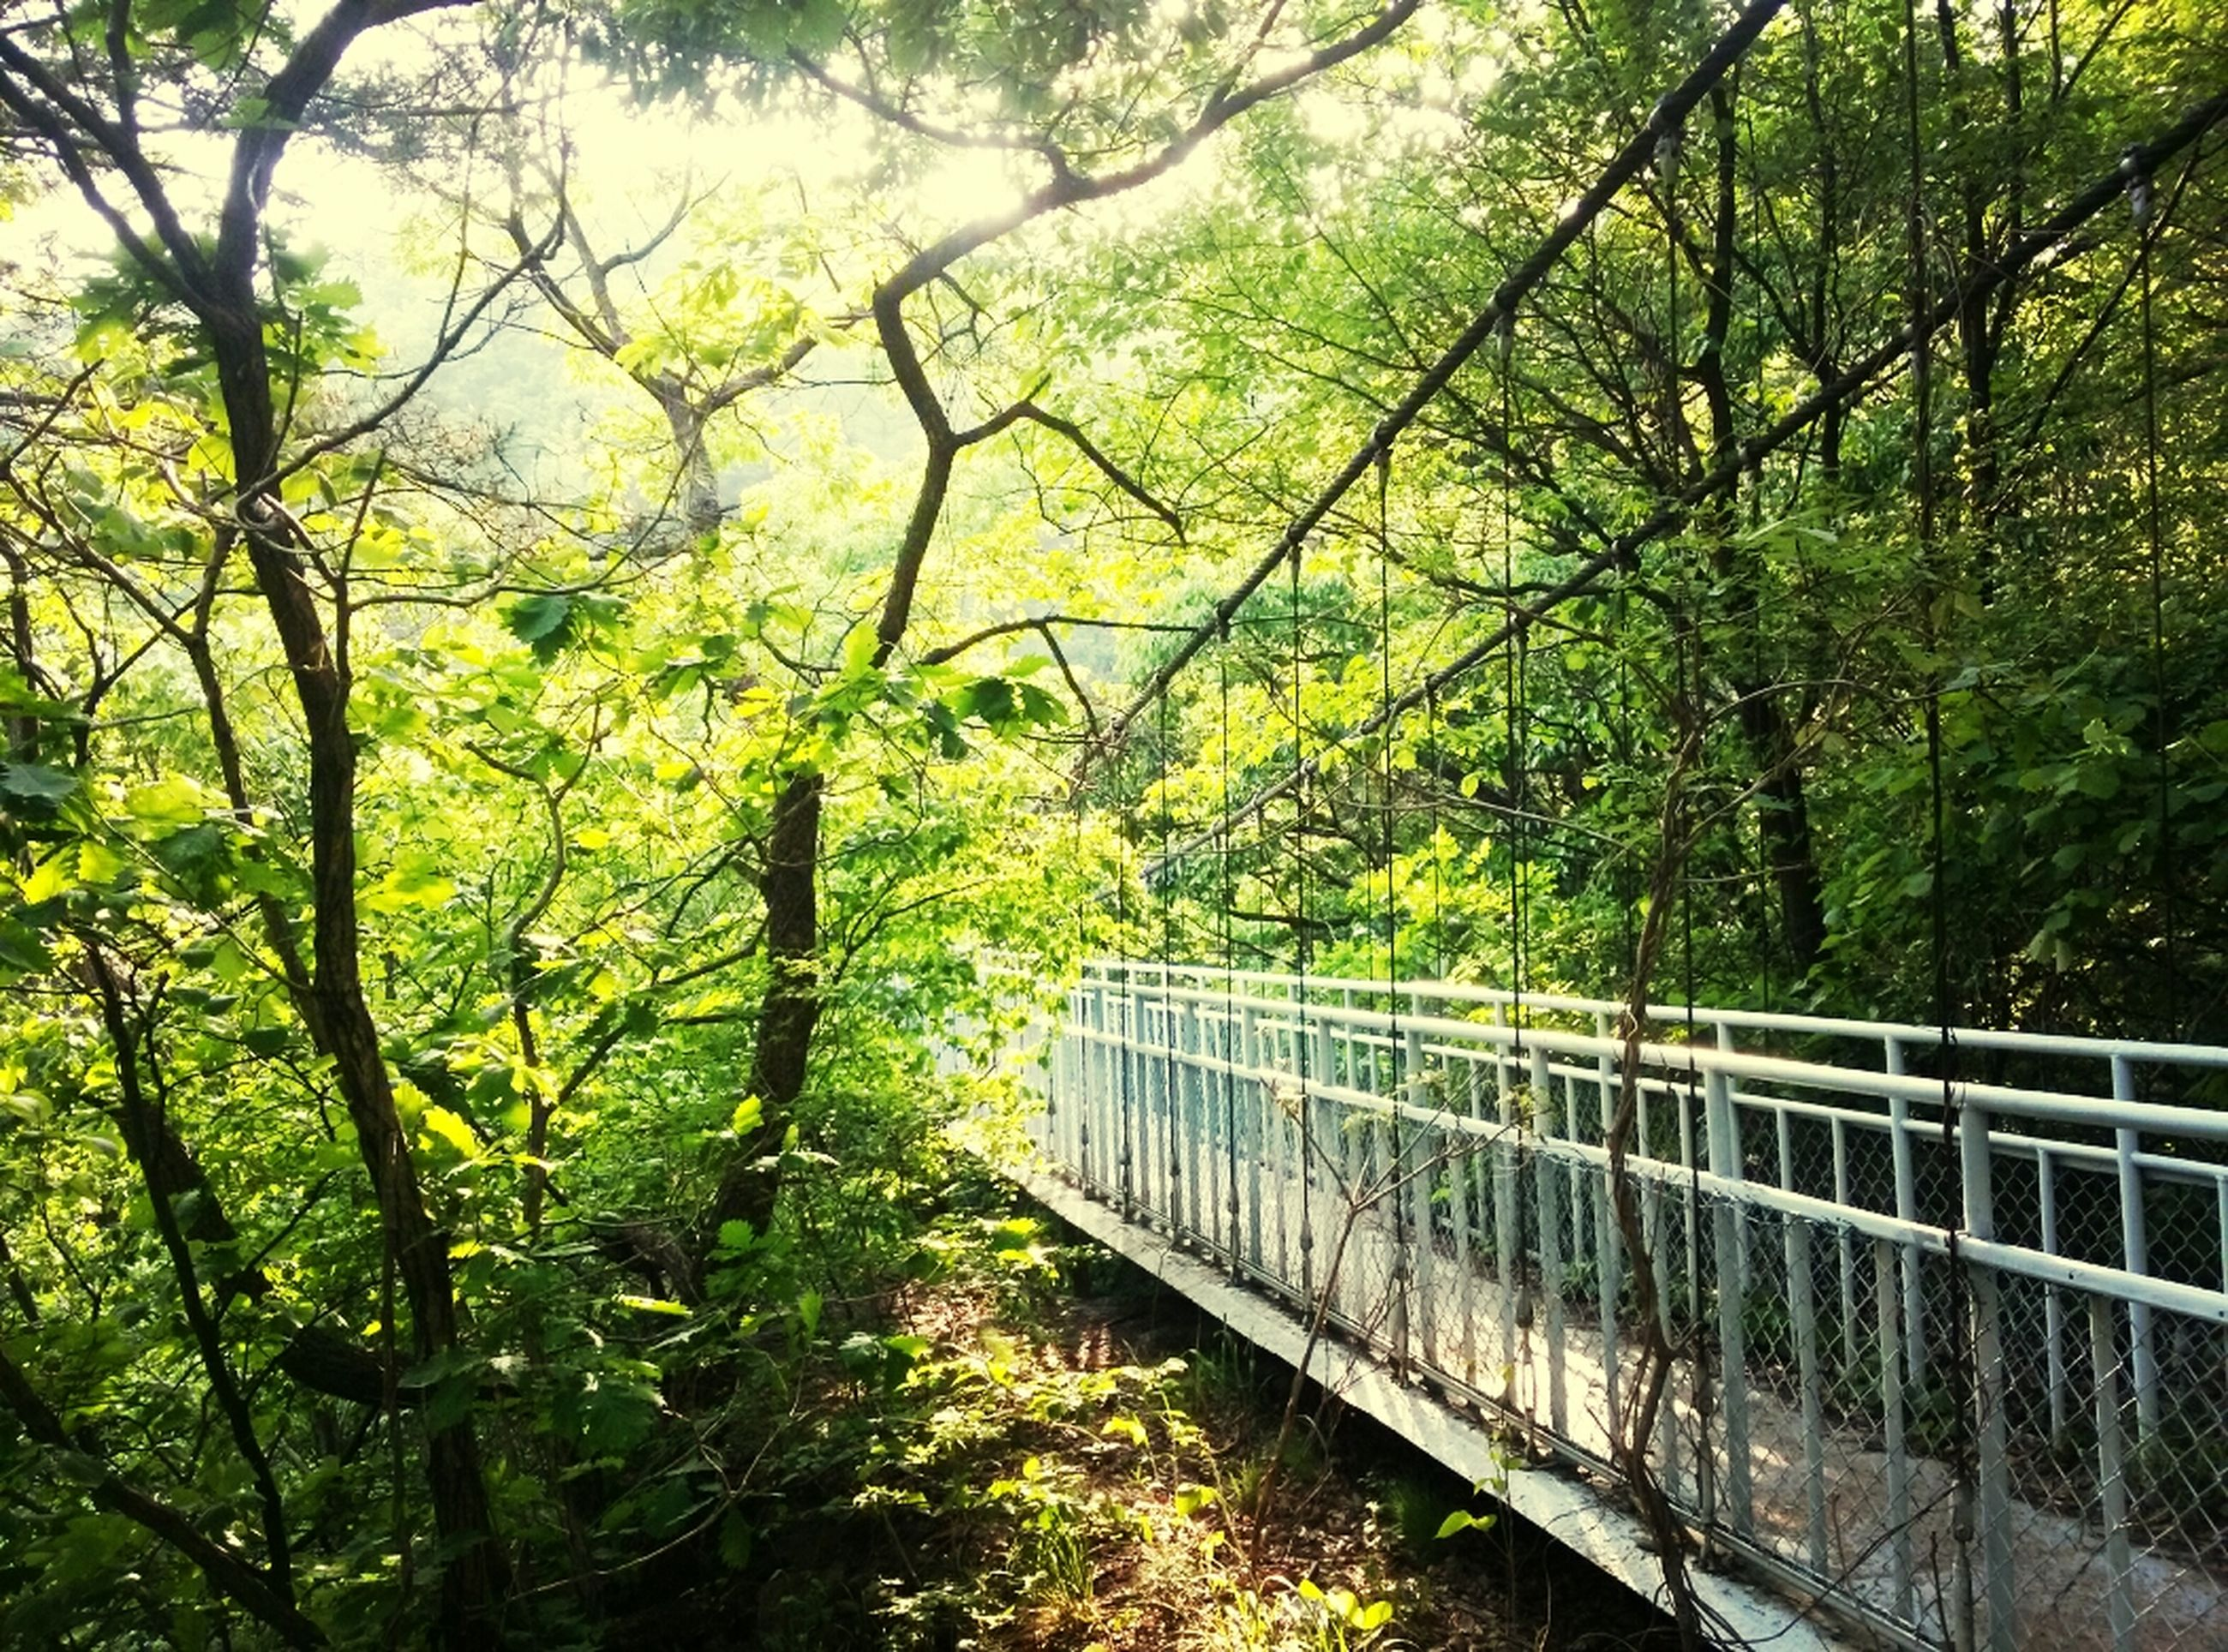 tree, growth, branch, green color, railing, fence, nature, forest, built structure, tranquility, day, architecture, connection, outdoors, lush foliage, no people, beauty in nature, bridge - man made structure, sky, plant